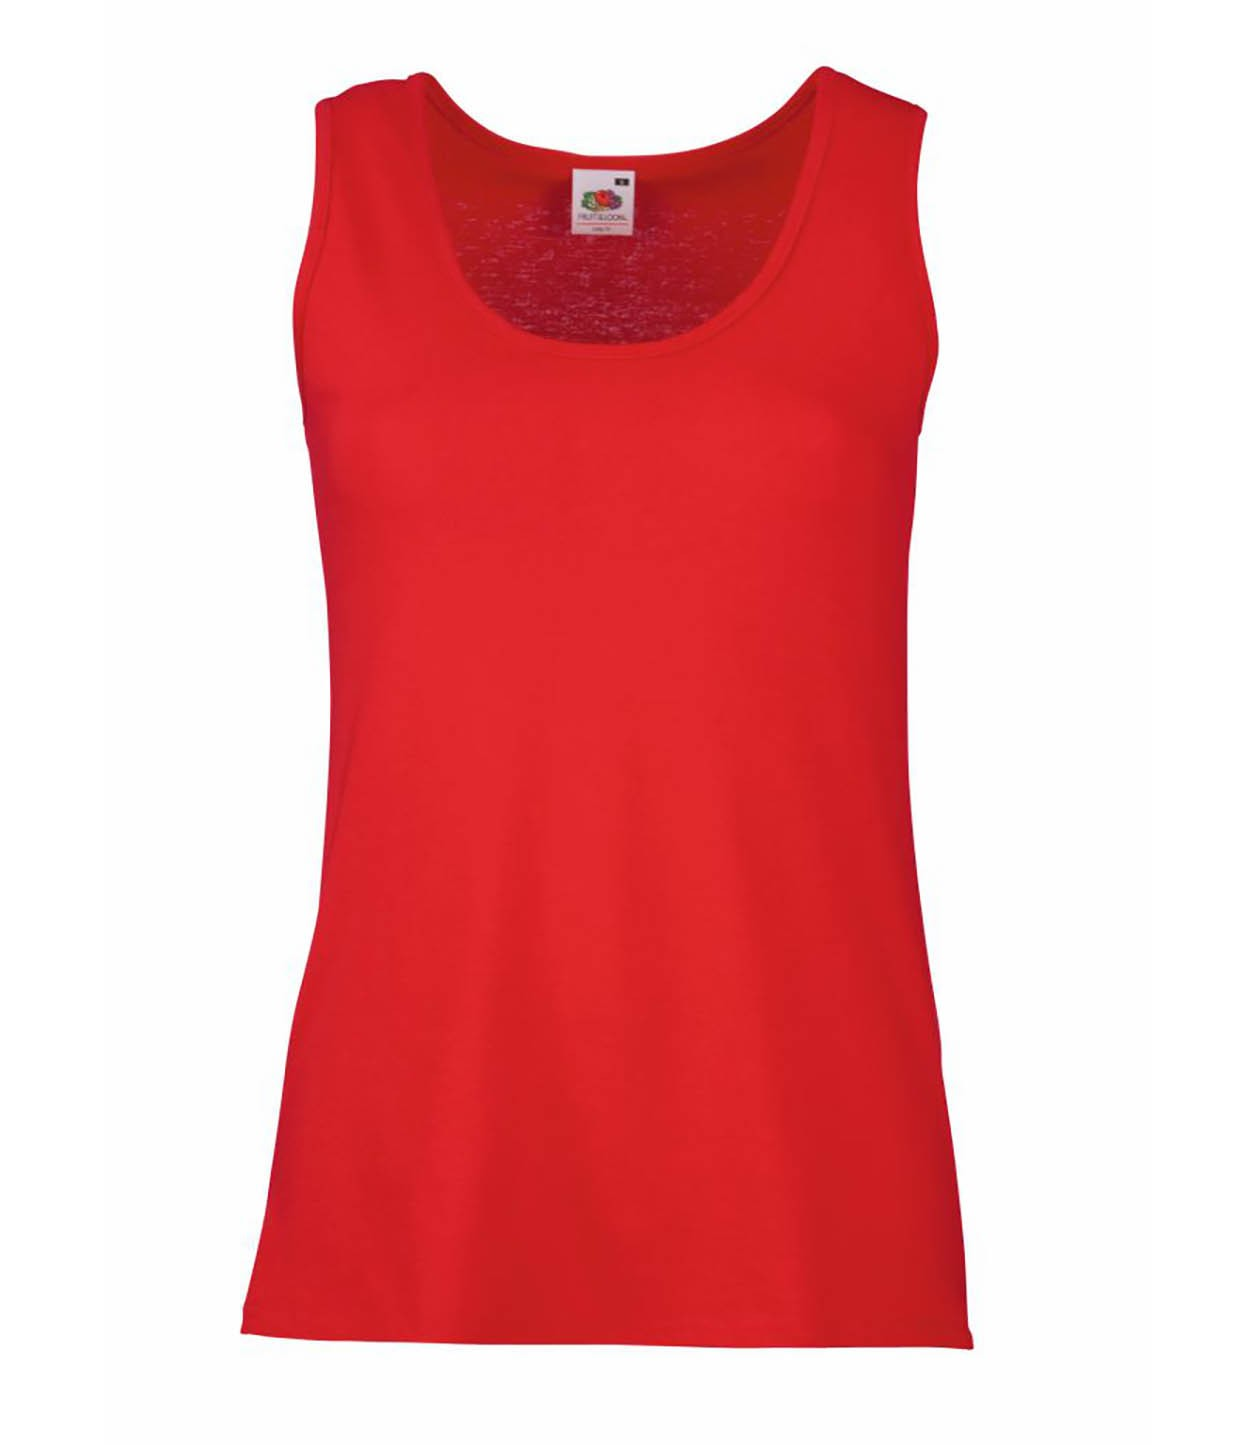 a0fcf4e2 Fruit of the Loom SS704 Lady Fit Value Vest - Women's Sleeveless T ...